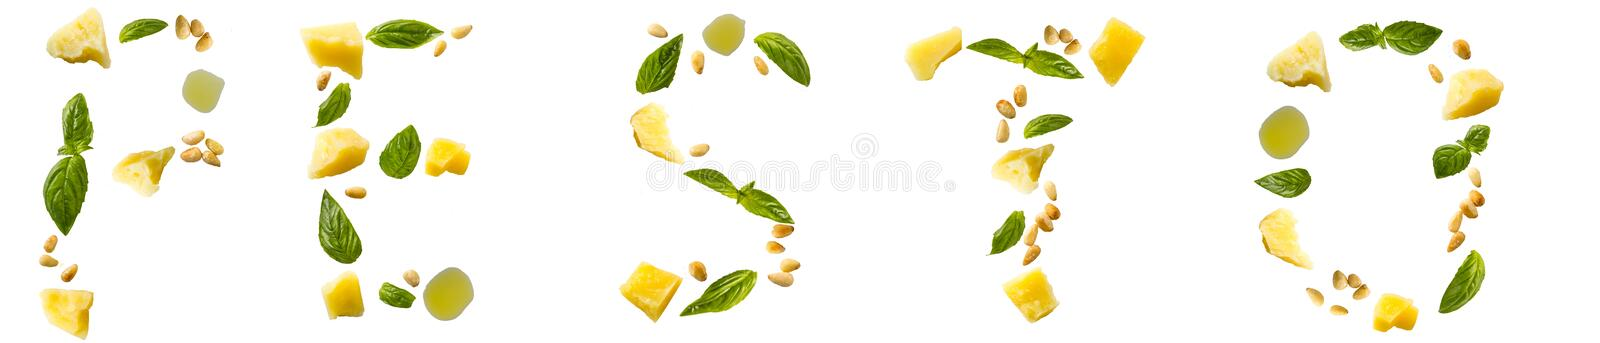 Ingredients for pesto isolated on white background. stock image